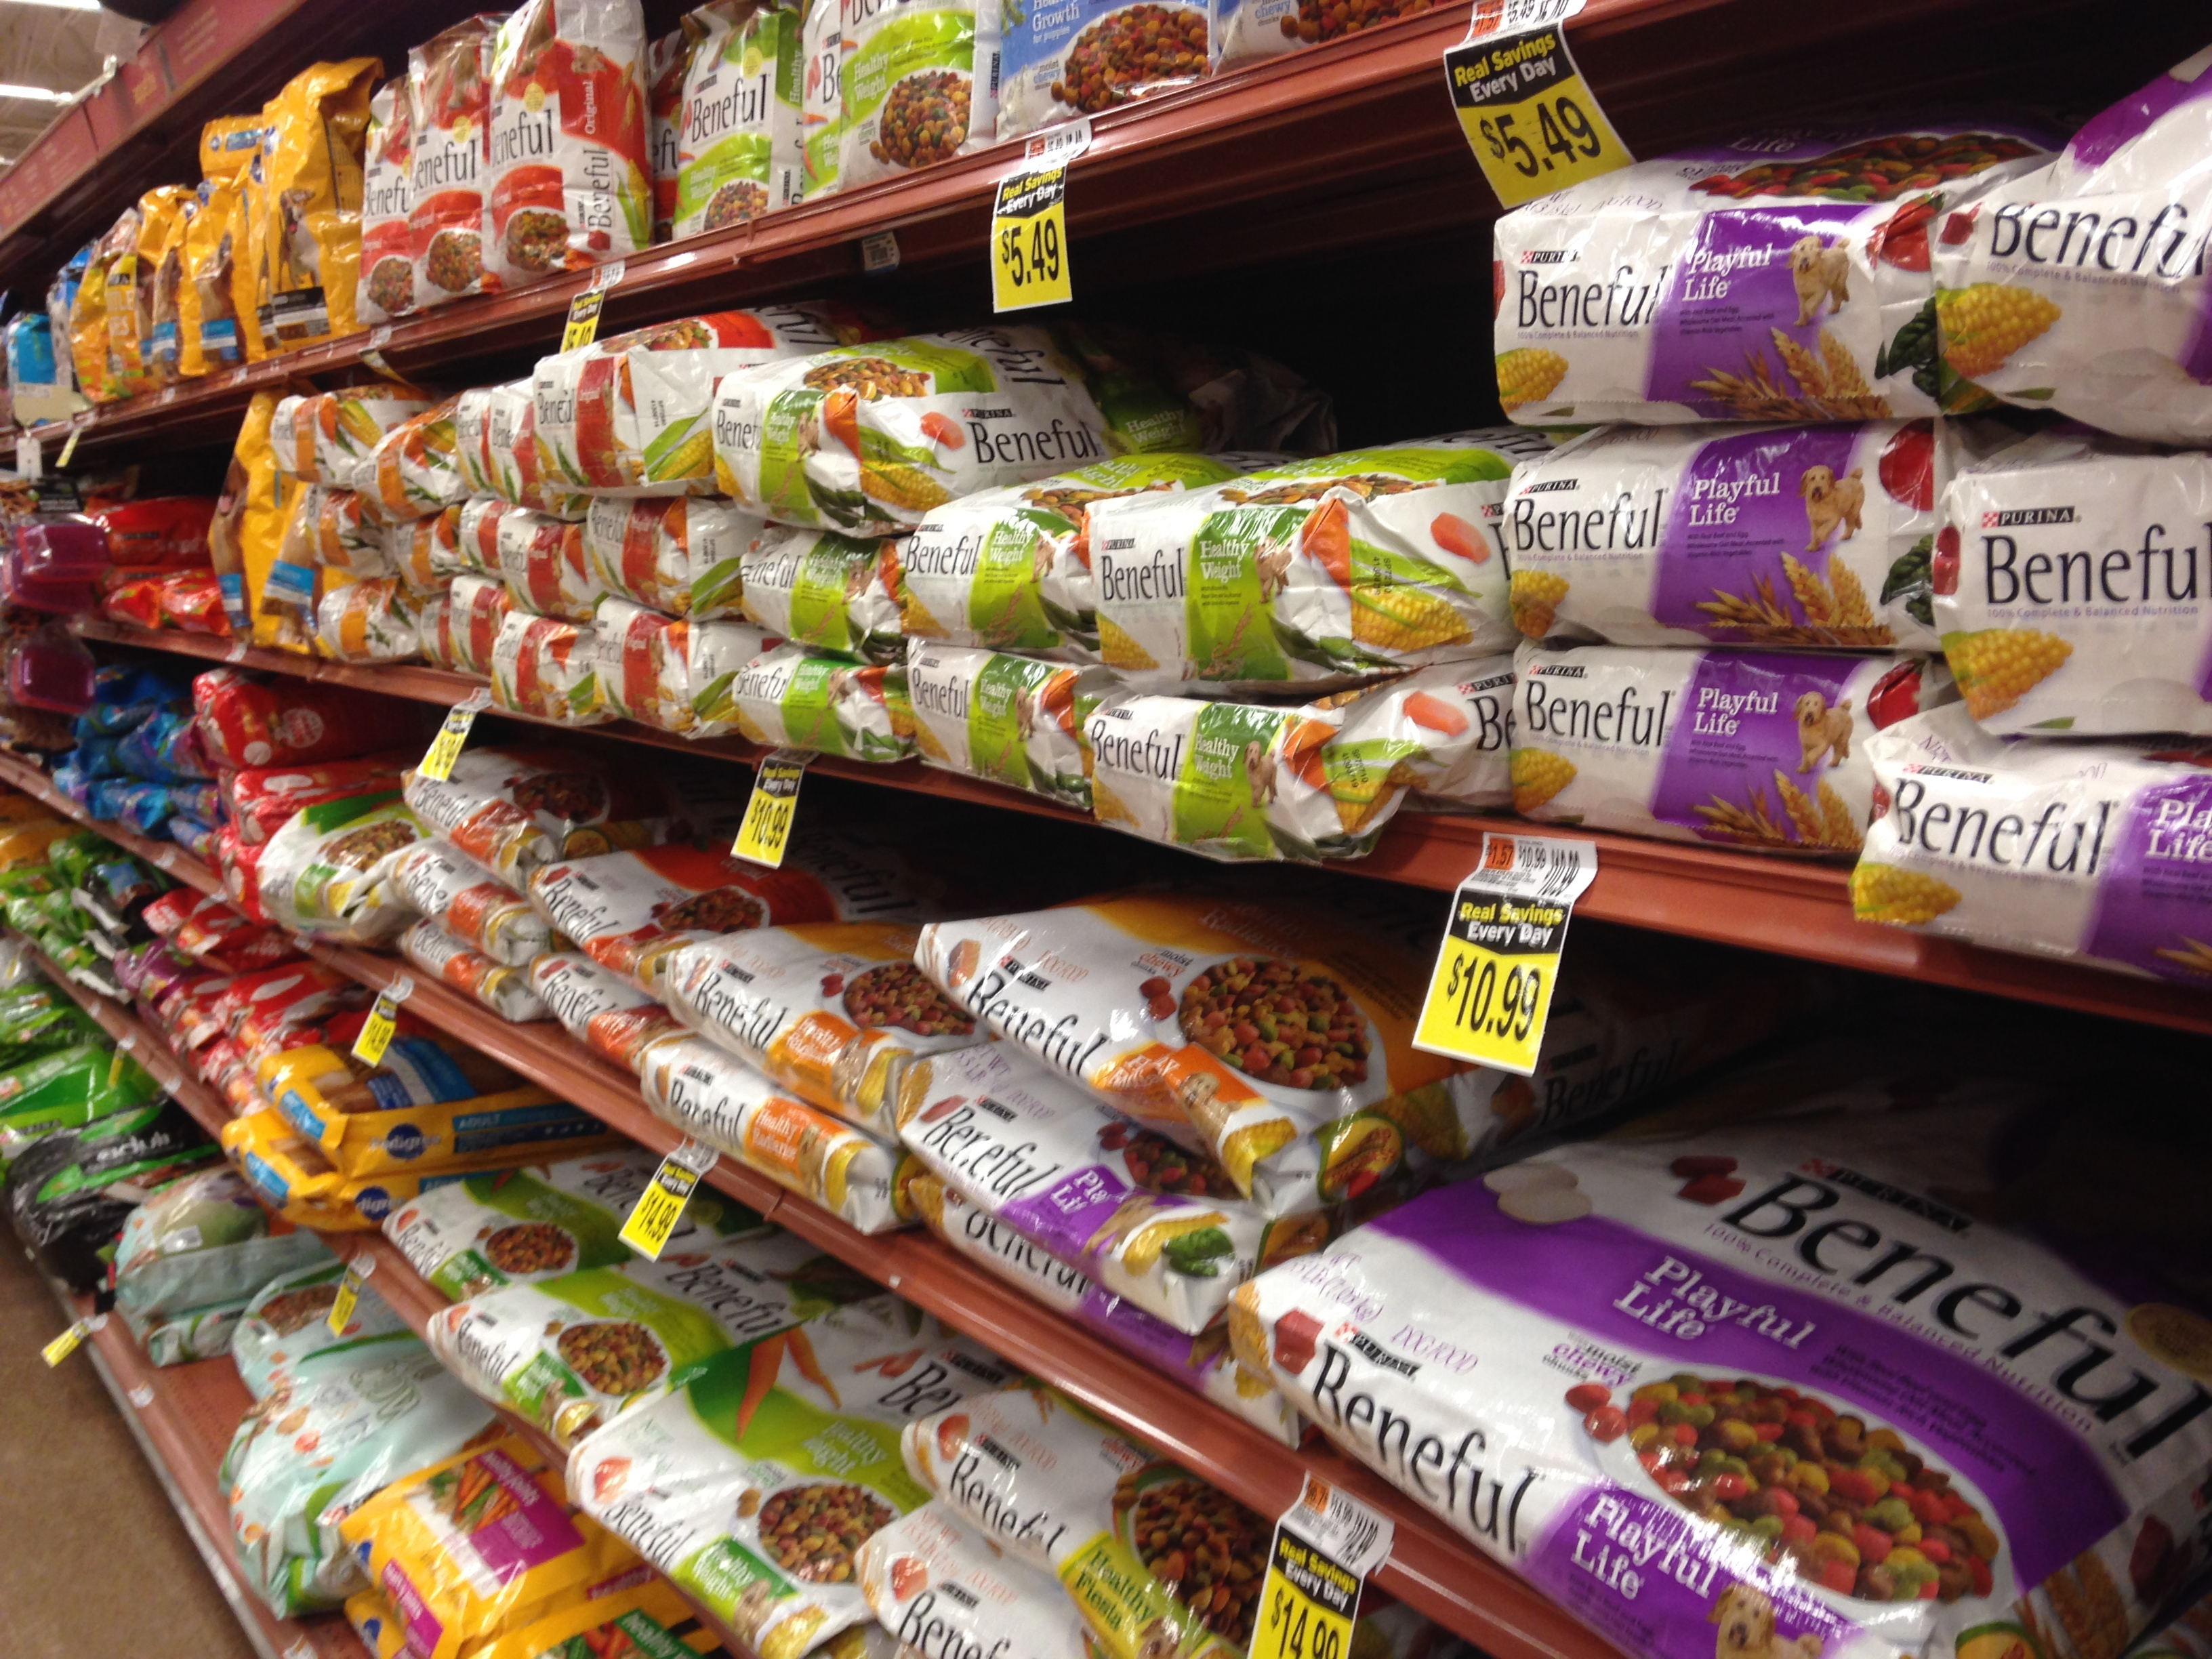 File:Dog food aisle.JPG